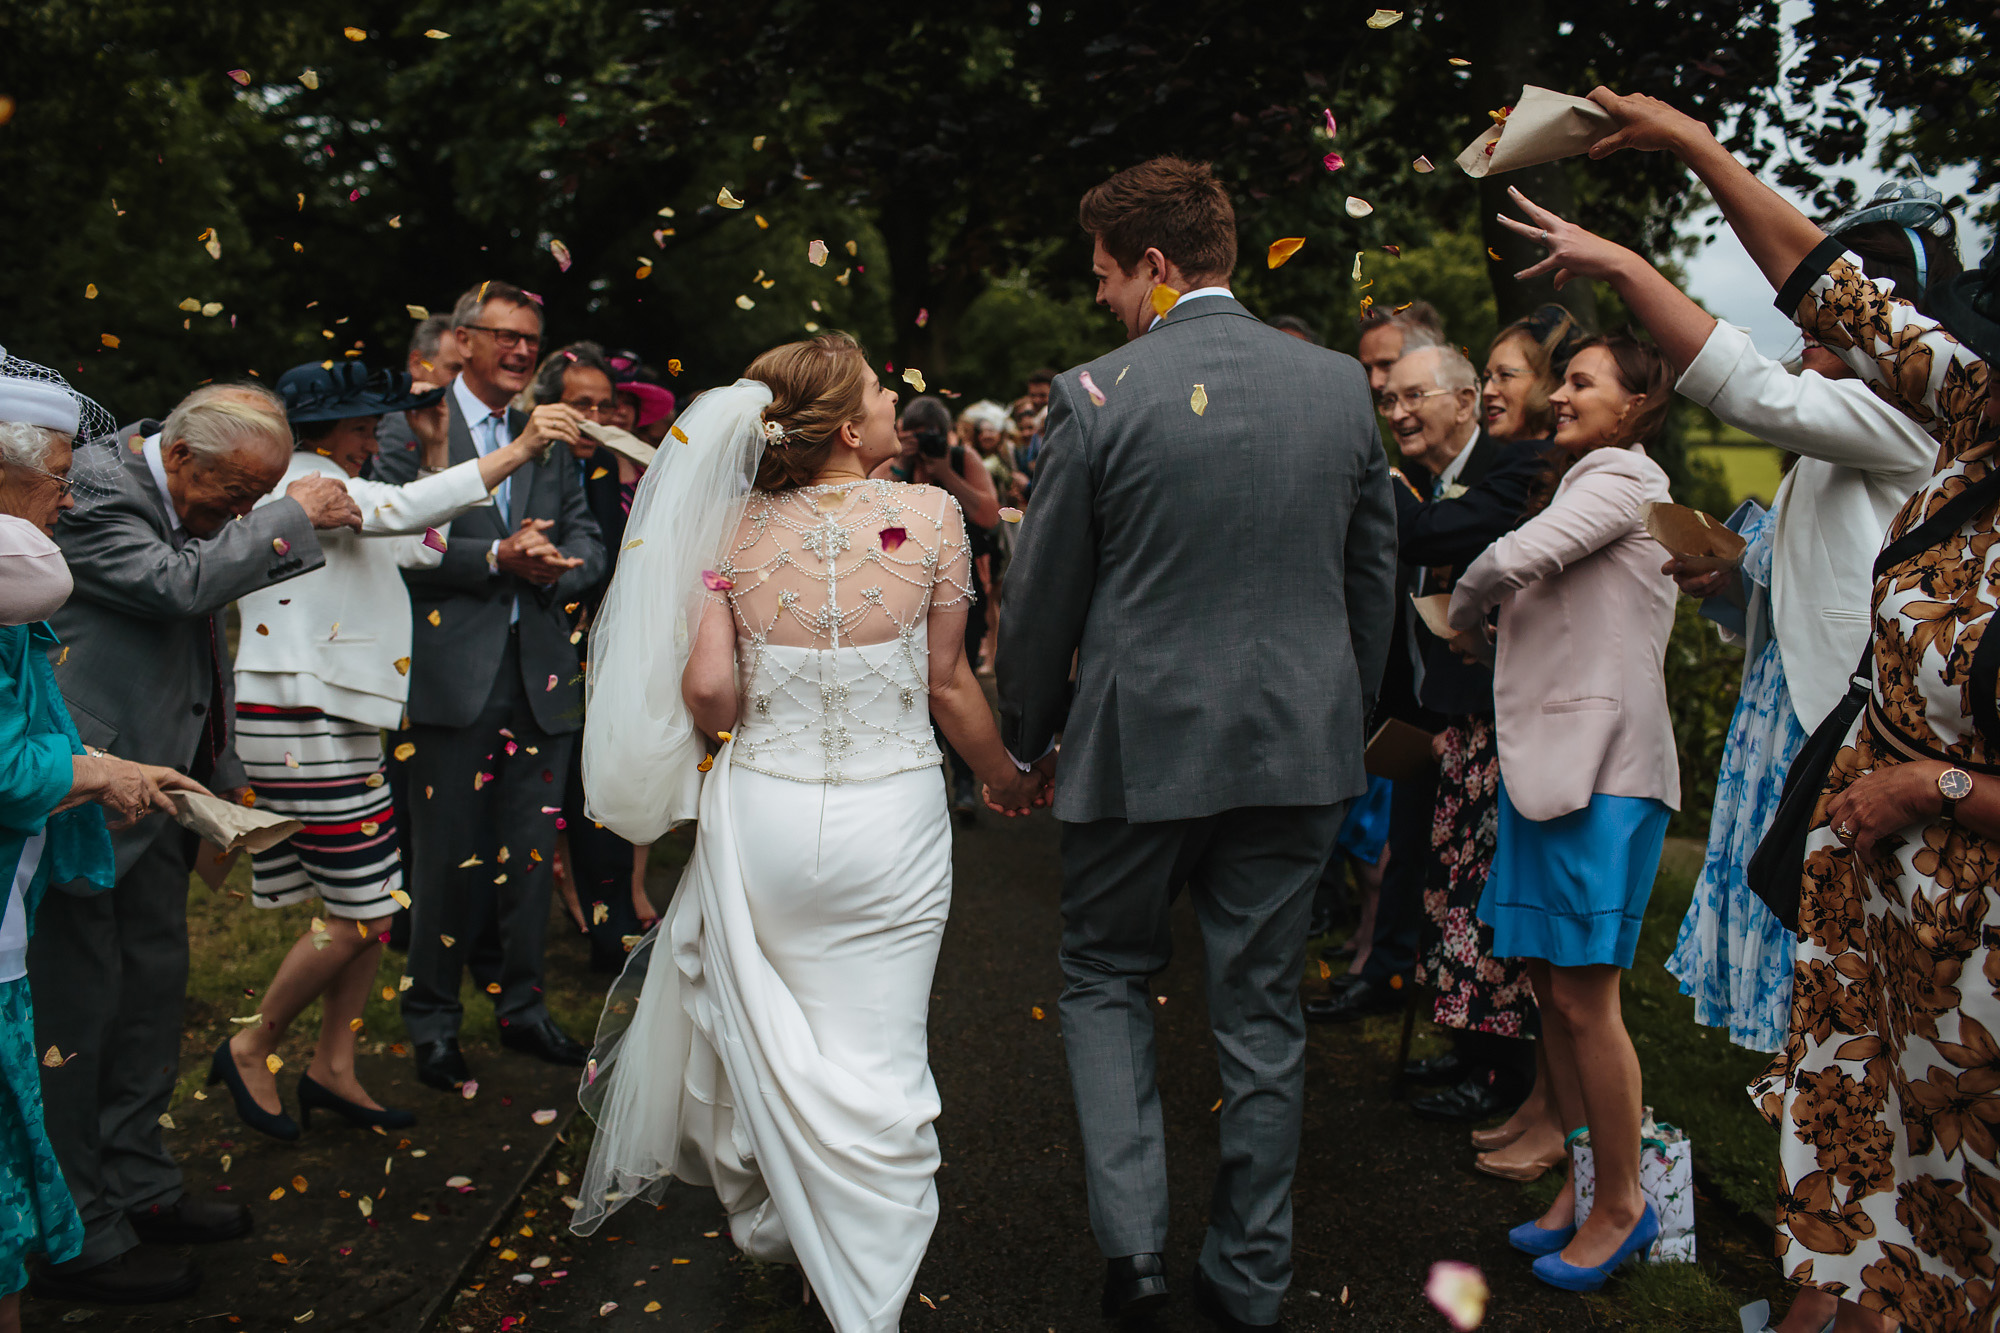 Throwing confetti on the Bride and Groom at a wedding